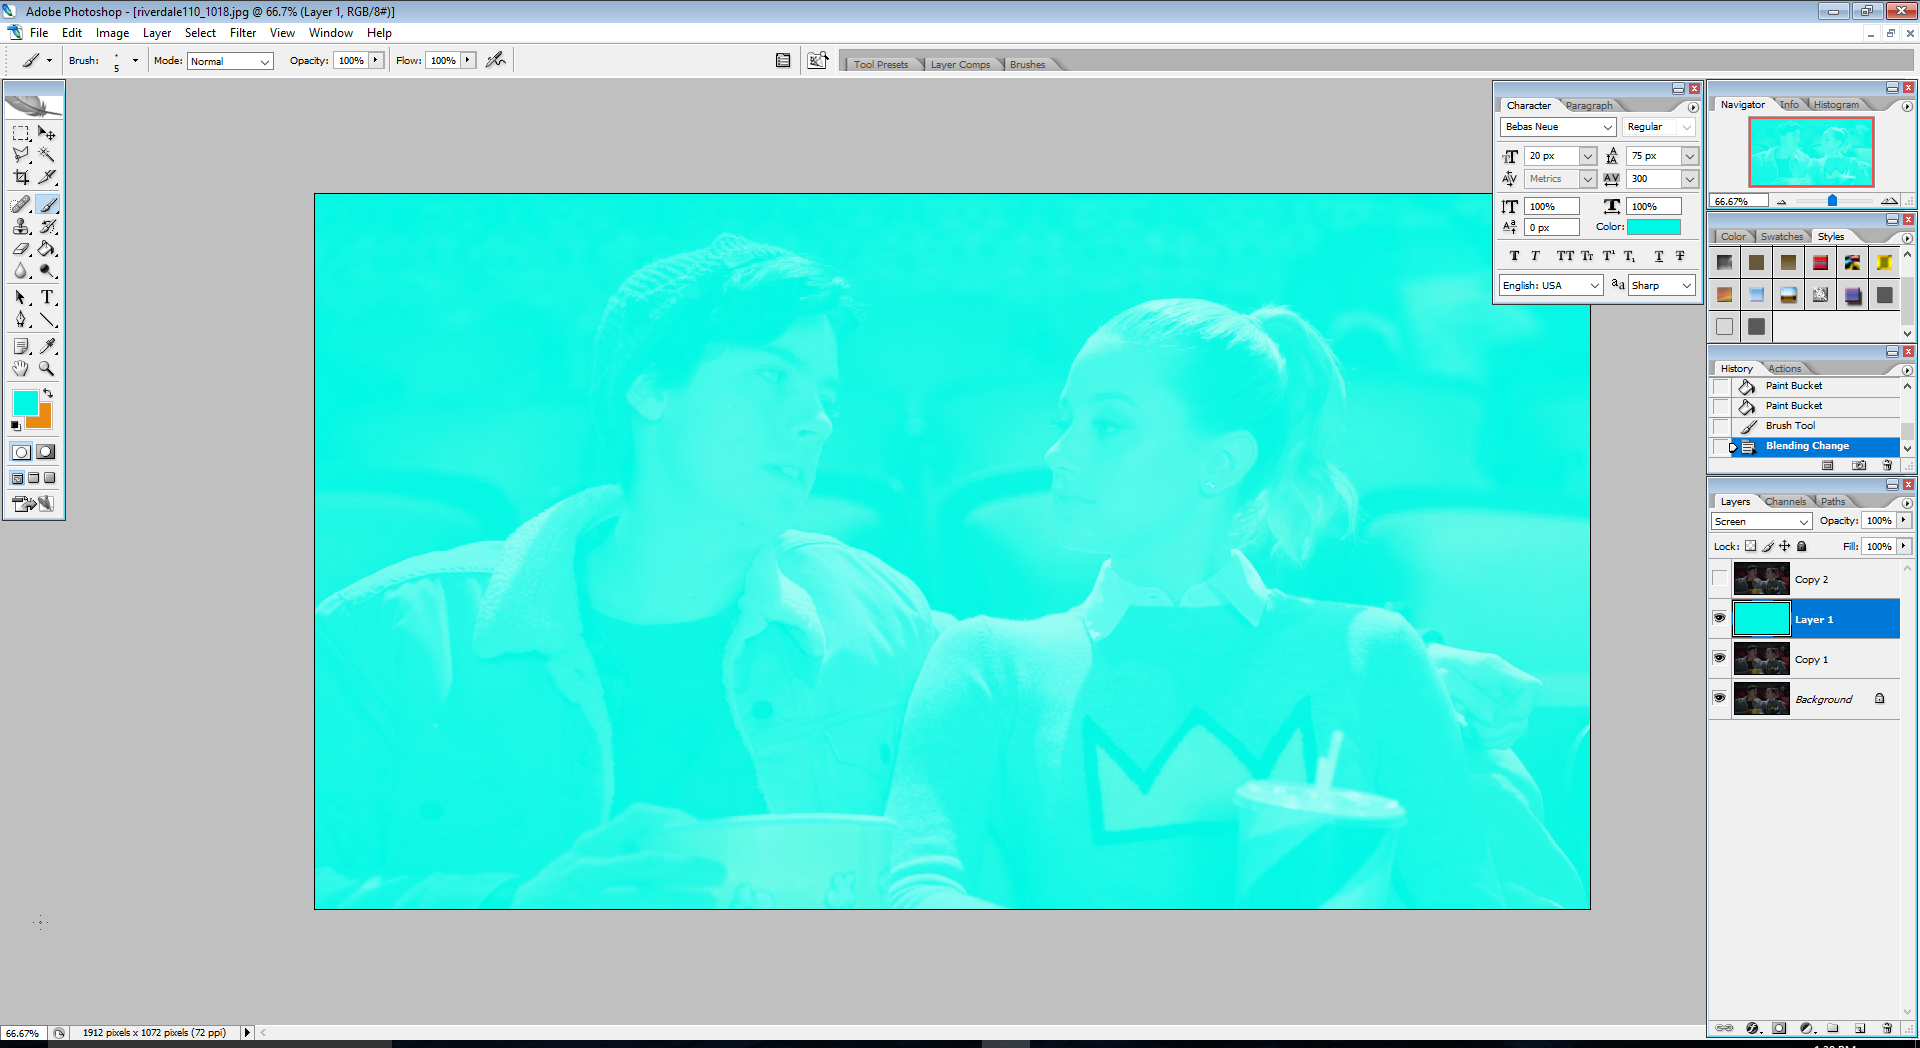 create a new layer above Copy 1; fill it with a neon blue (preferably #00f7e3); set the blending mode to ScreenCopy 2 is temporarily hidden in this image